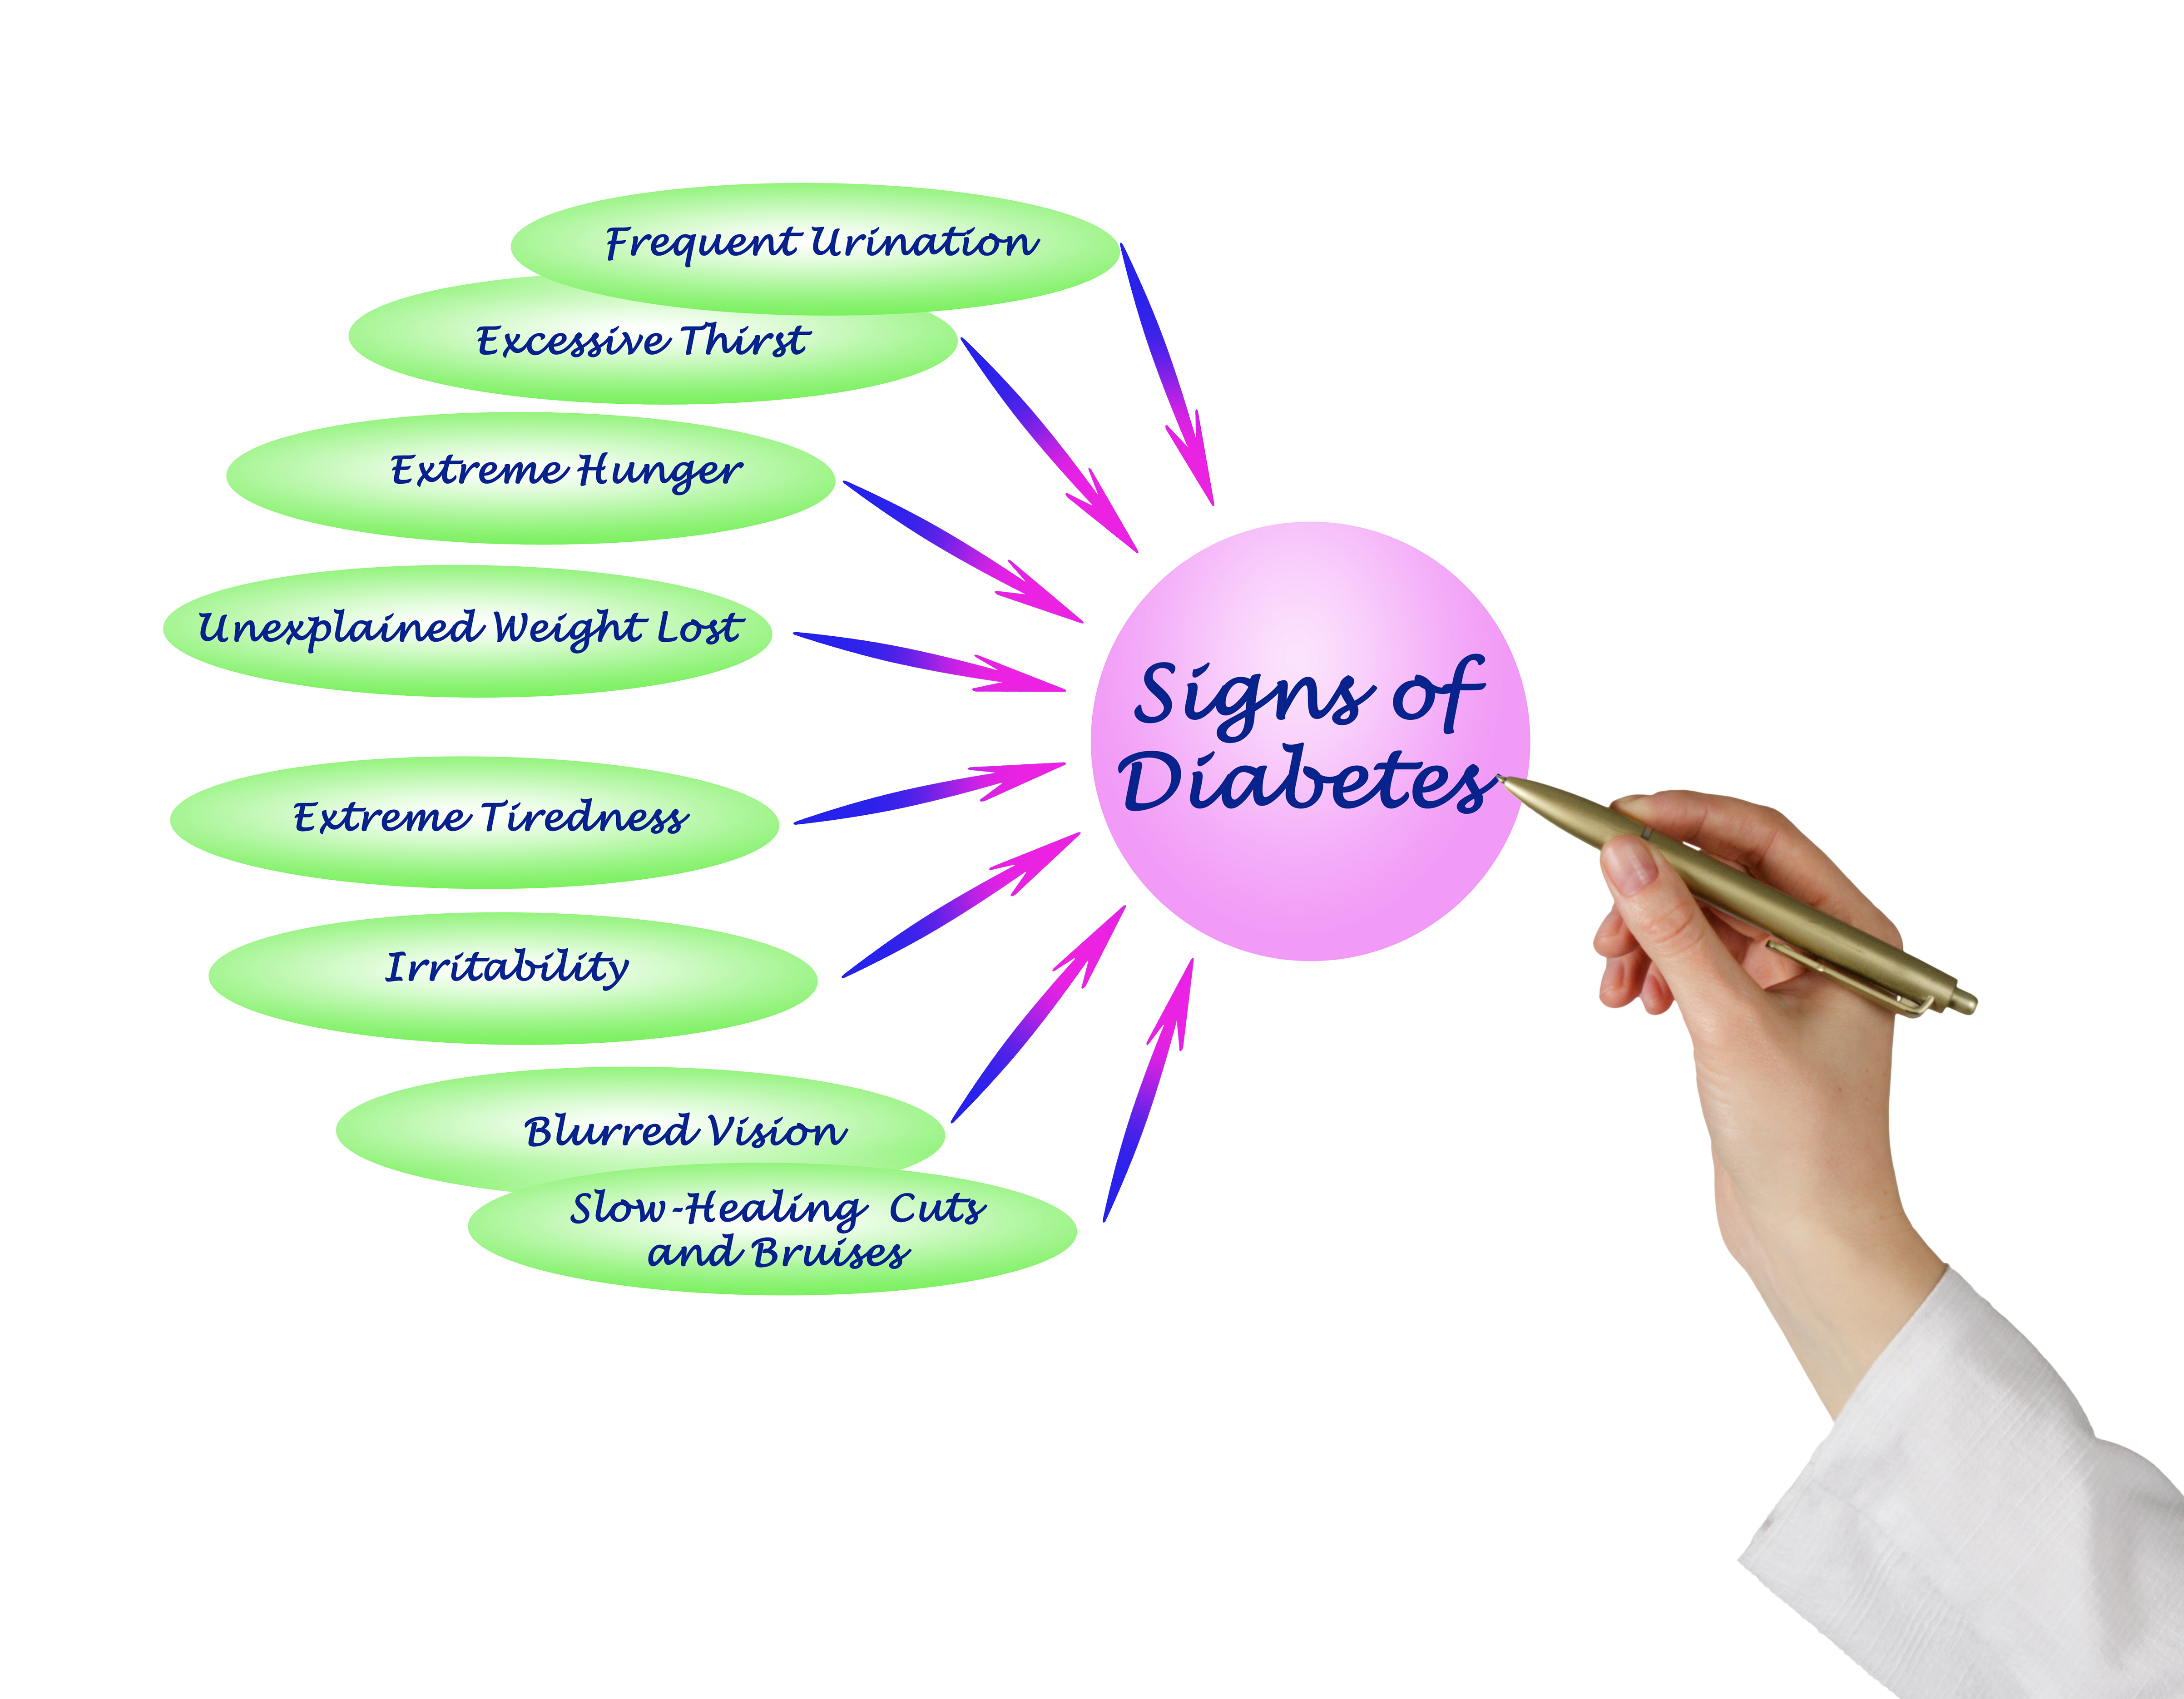 What are the signs of diabetes?